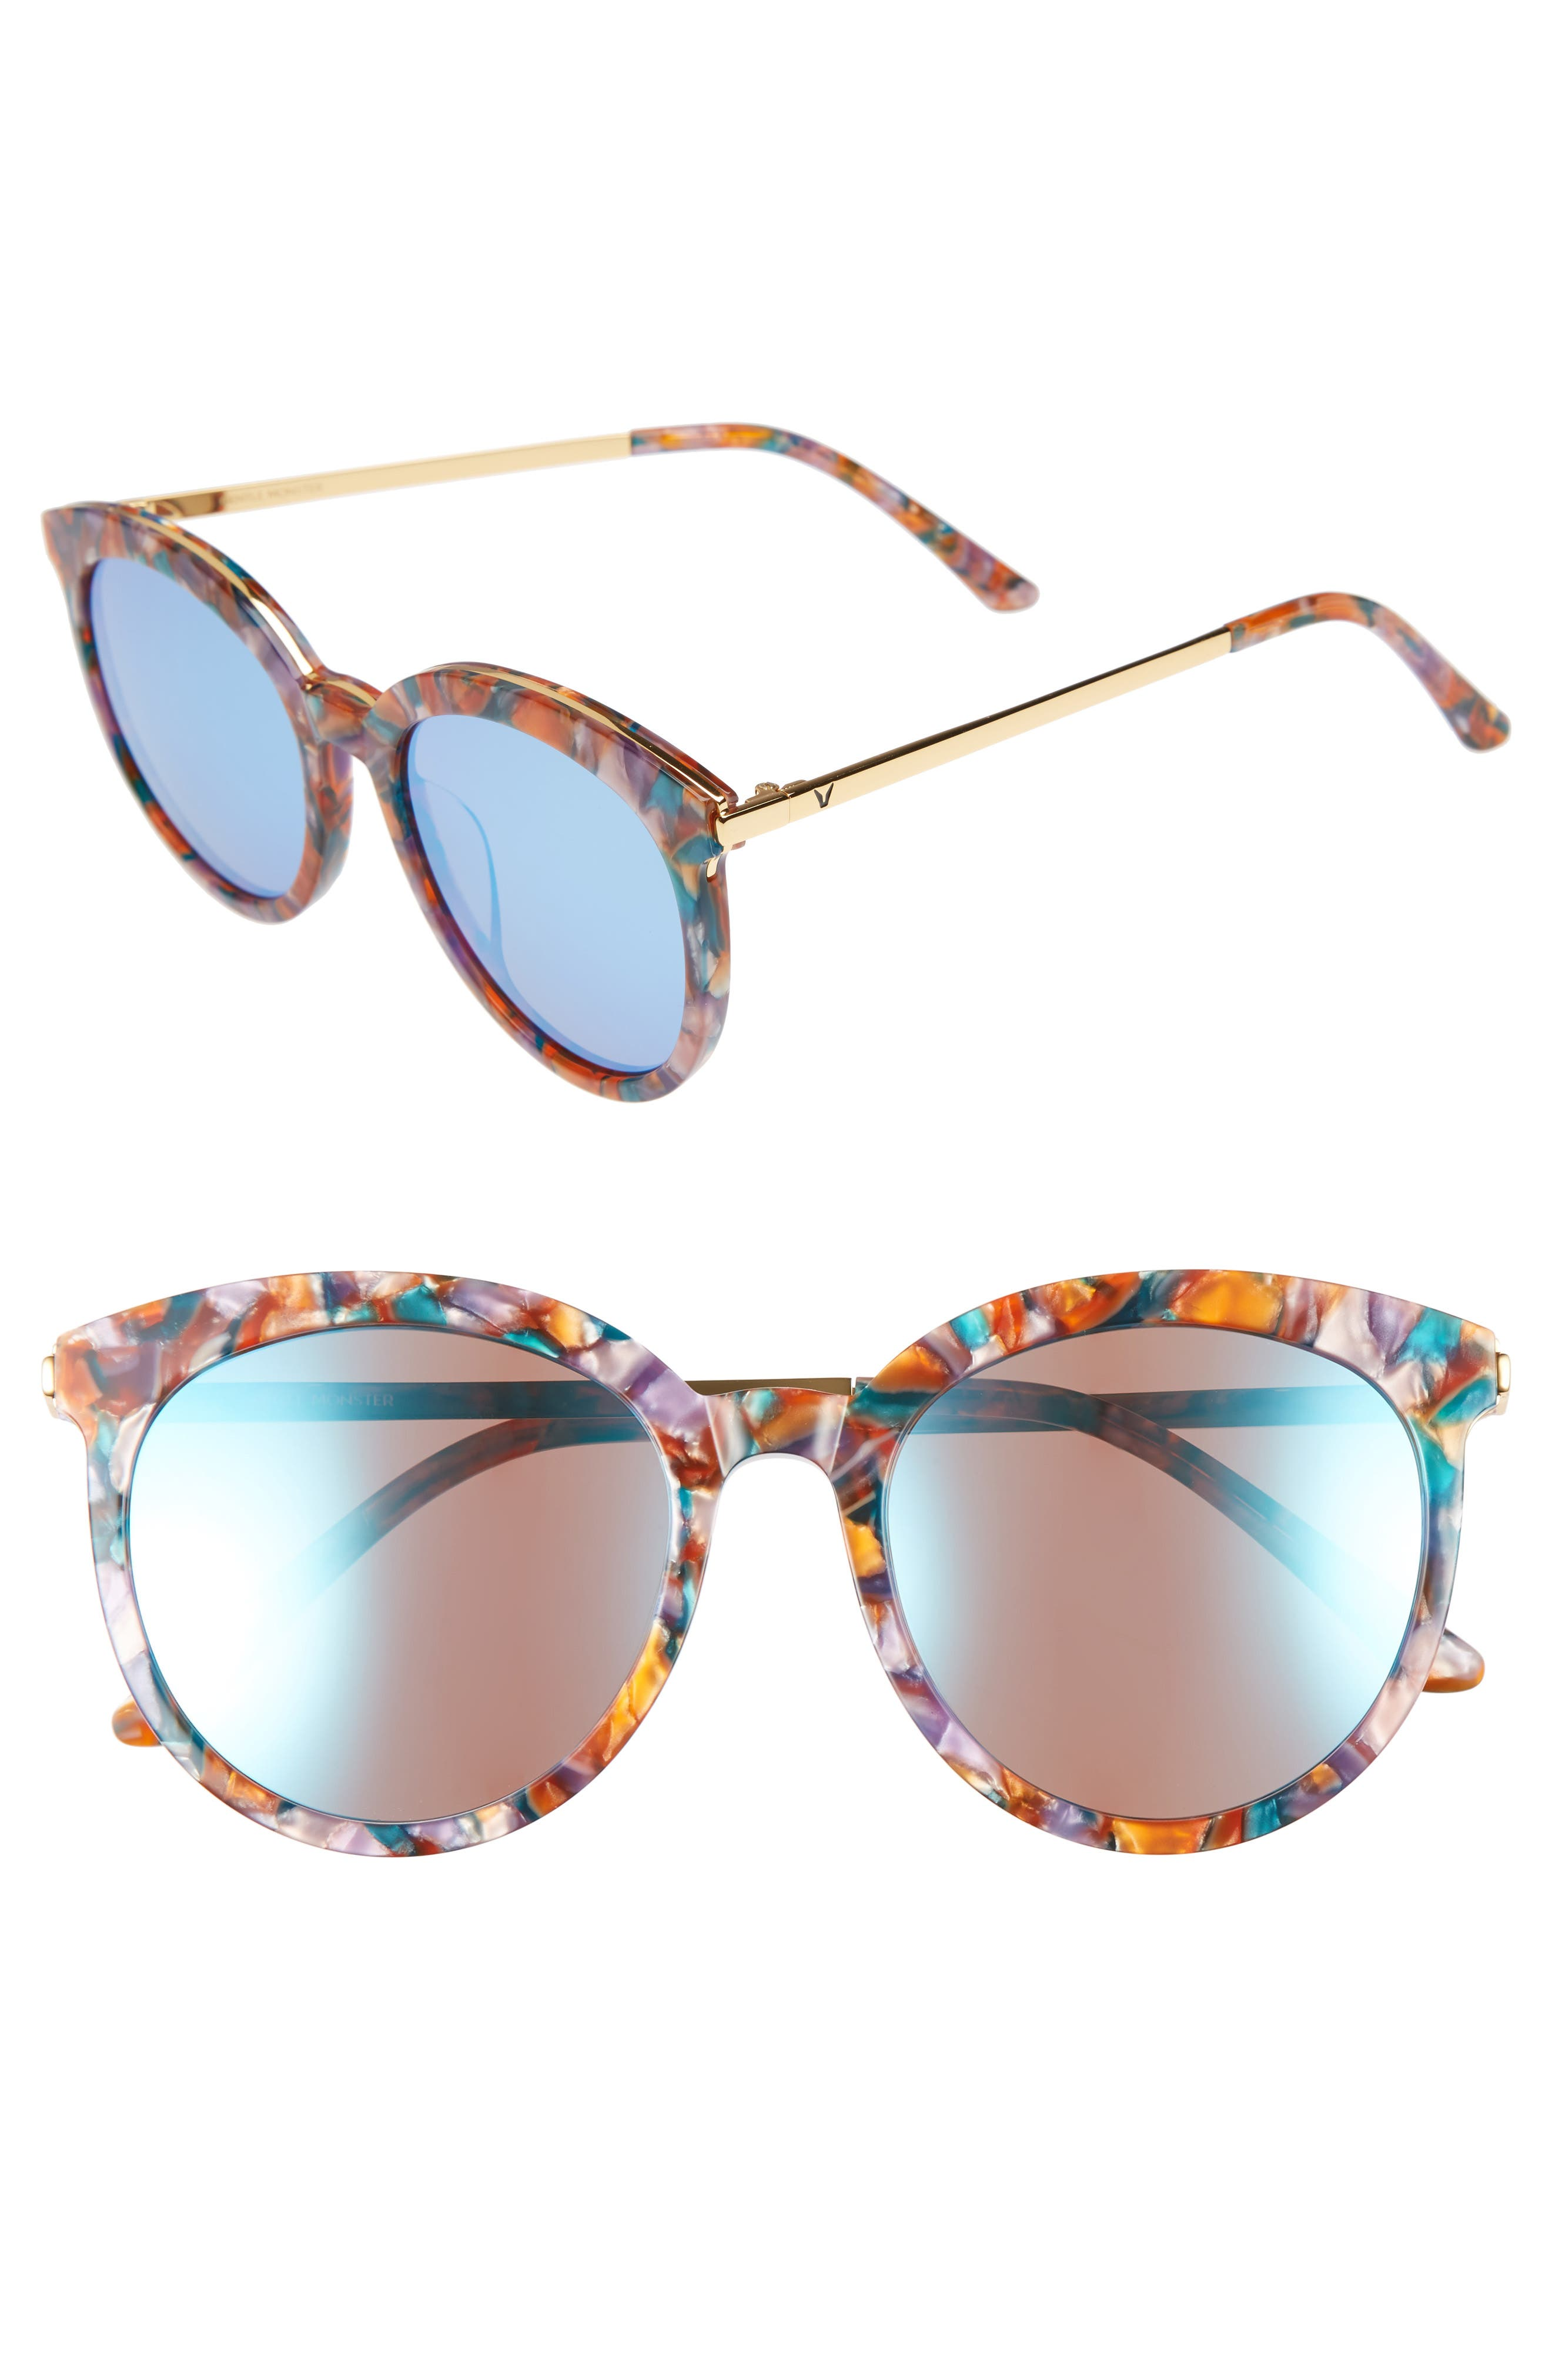 Main Image - Gentle Monster Vanilla Road 54mm Rounded Sunglasses